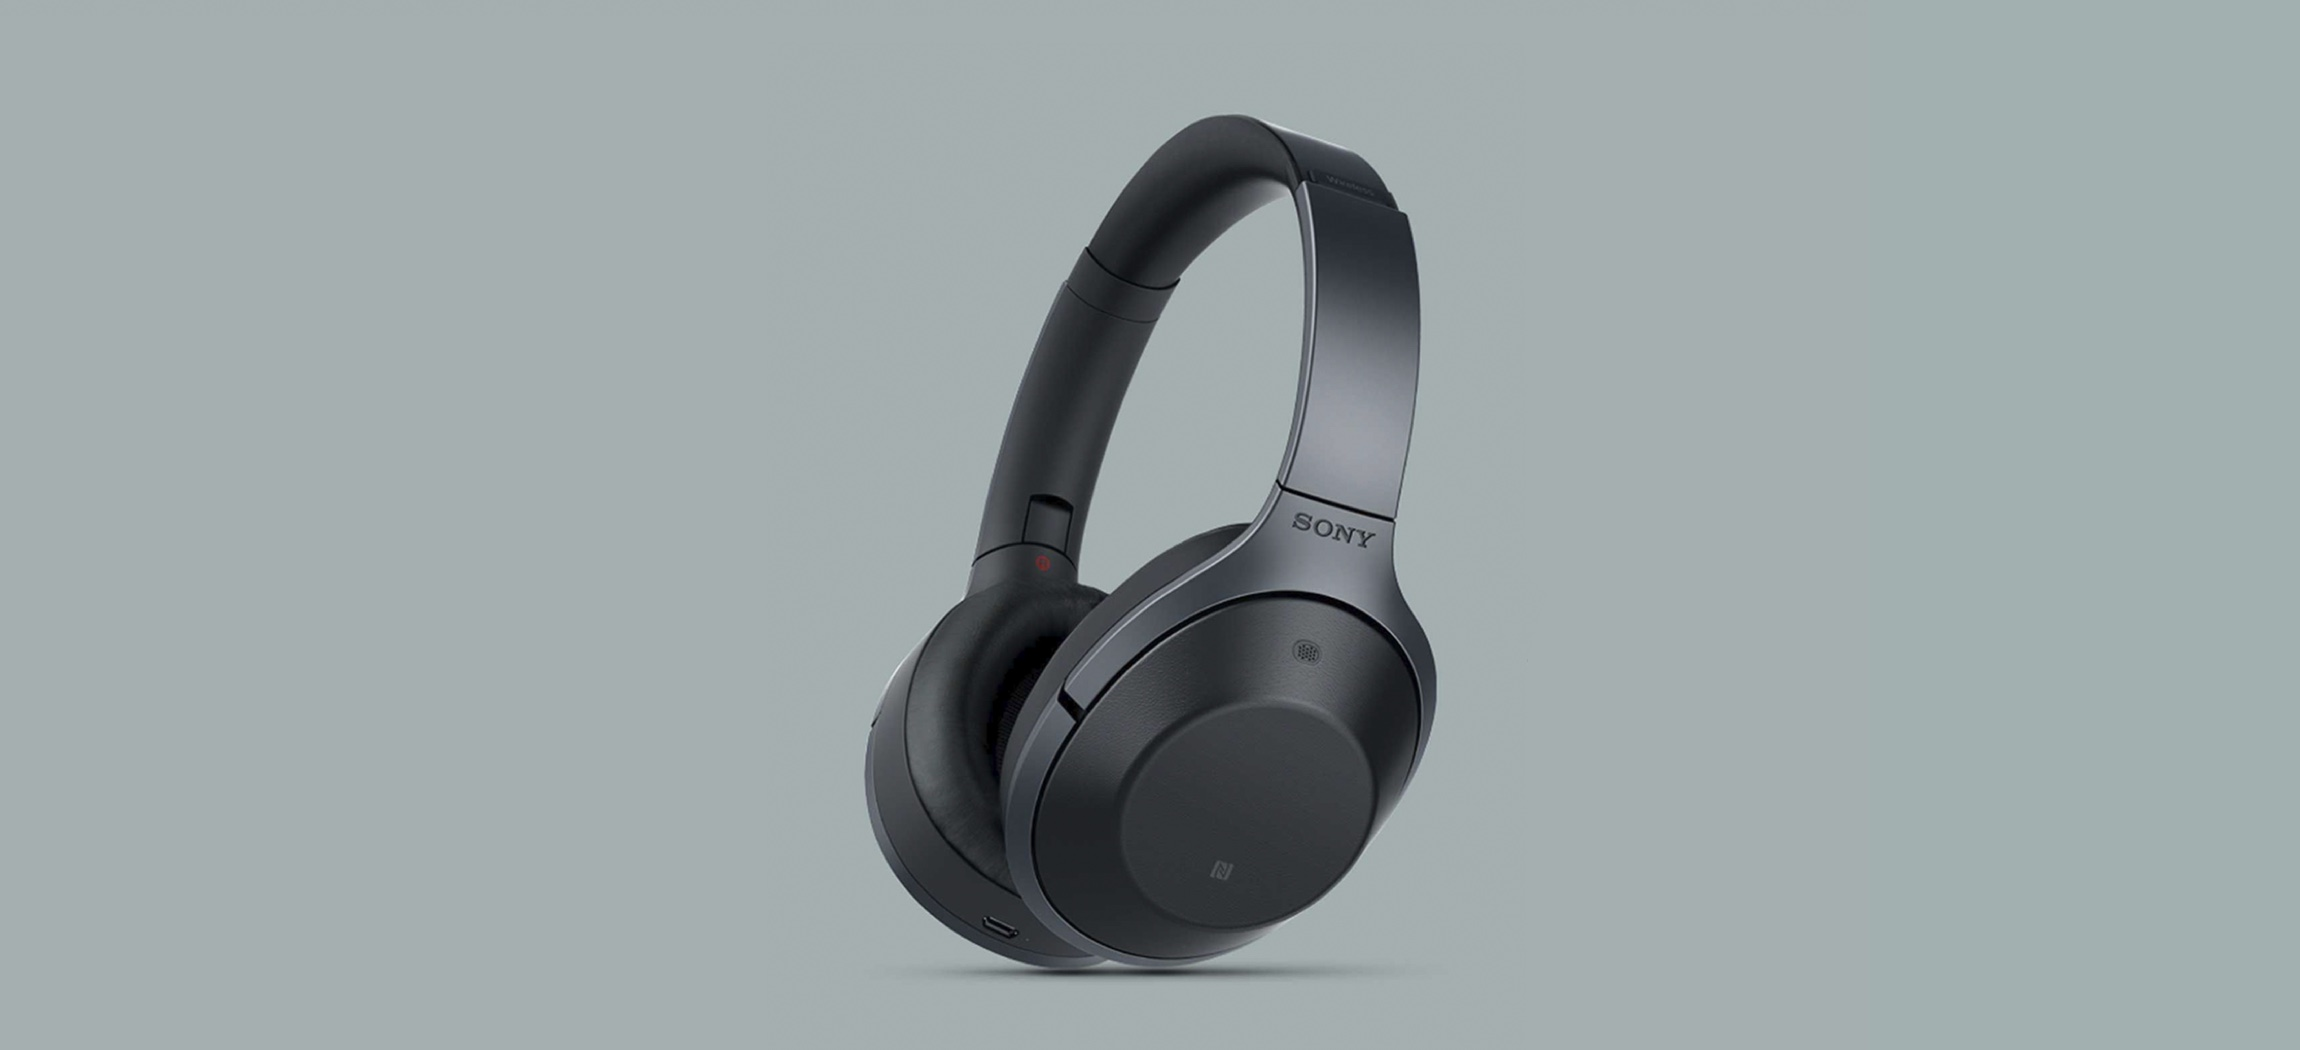 A pair of headphones floats in the air